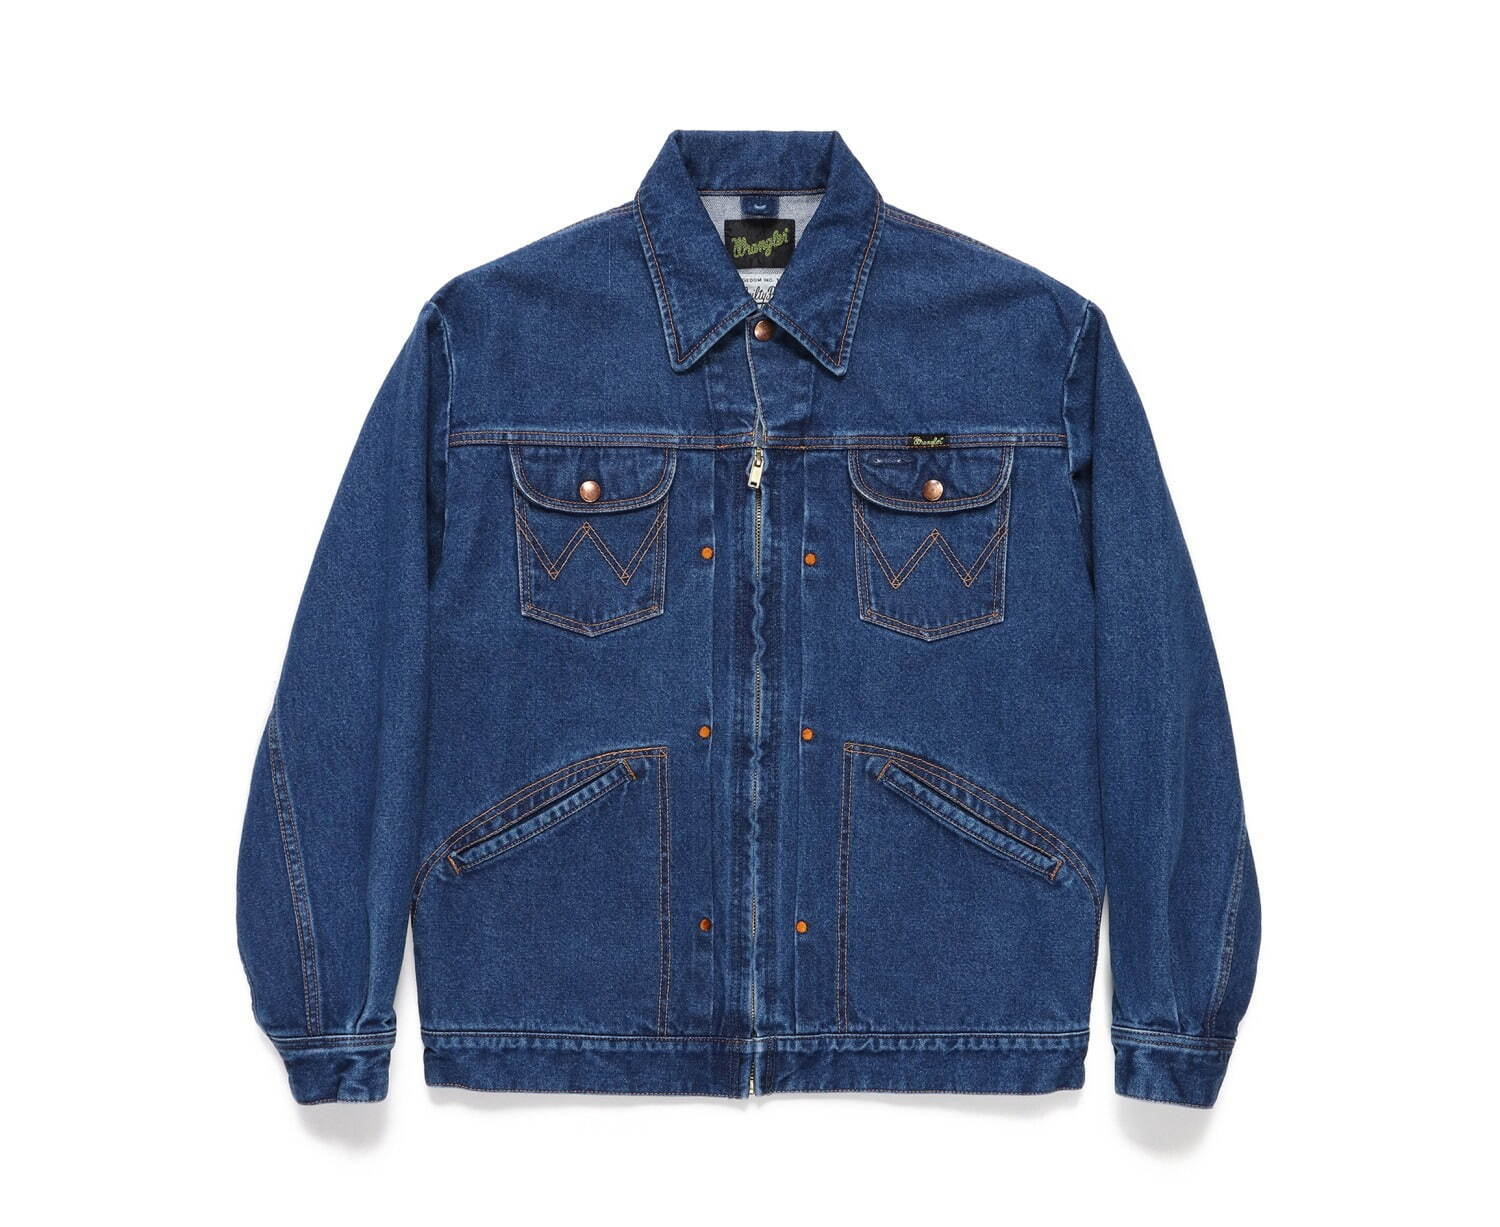 24 MJZ TRUCKER JACKET 33,000円(税込)